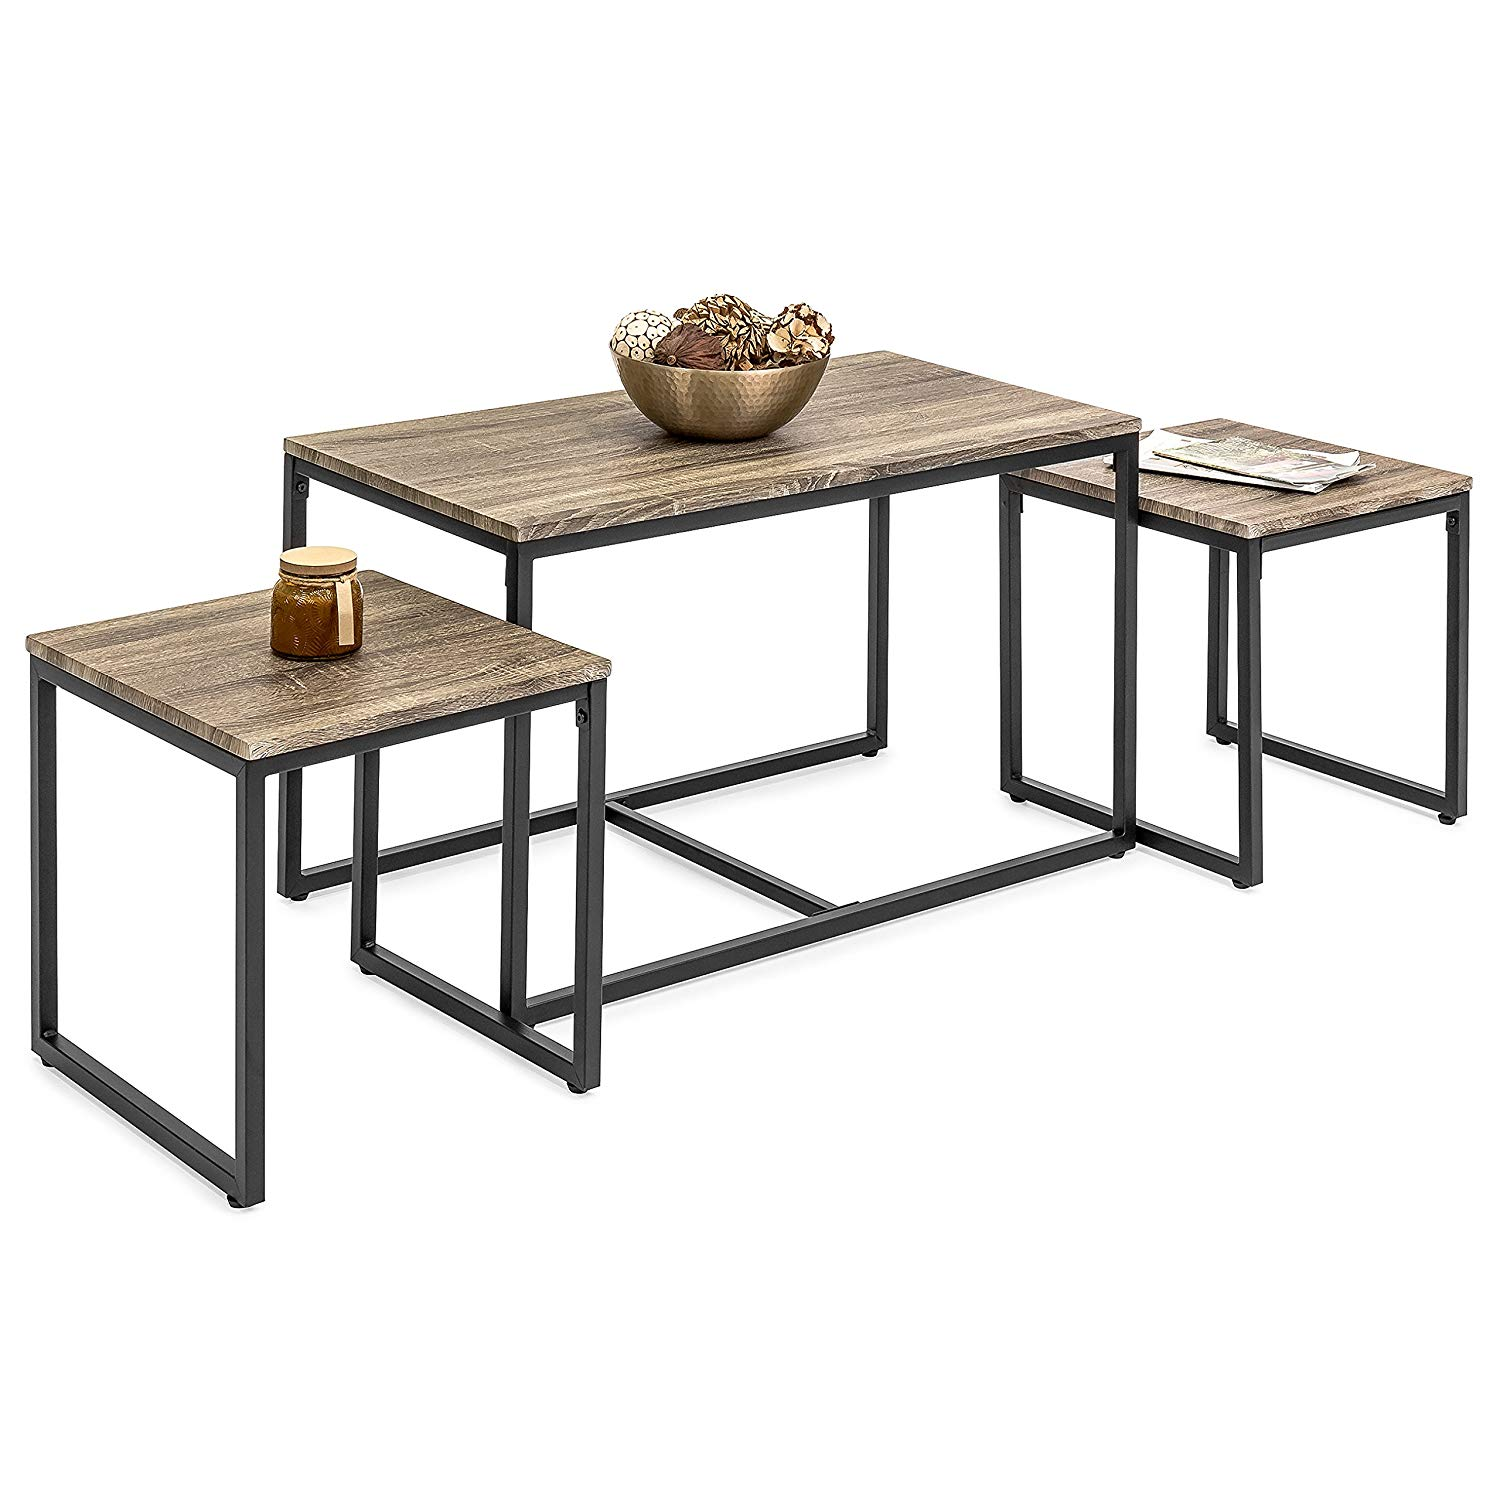 best choice products piece modern lightweight nesting coffee and accent table sets living room furniture lounge set end tables brown kitchen round toronto wicker patio chairs wine